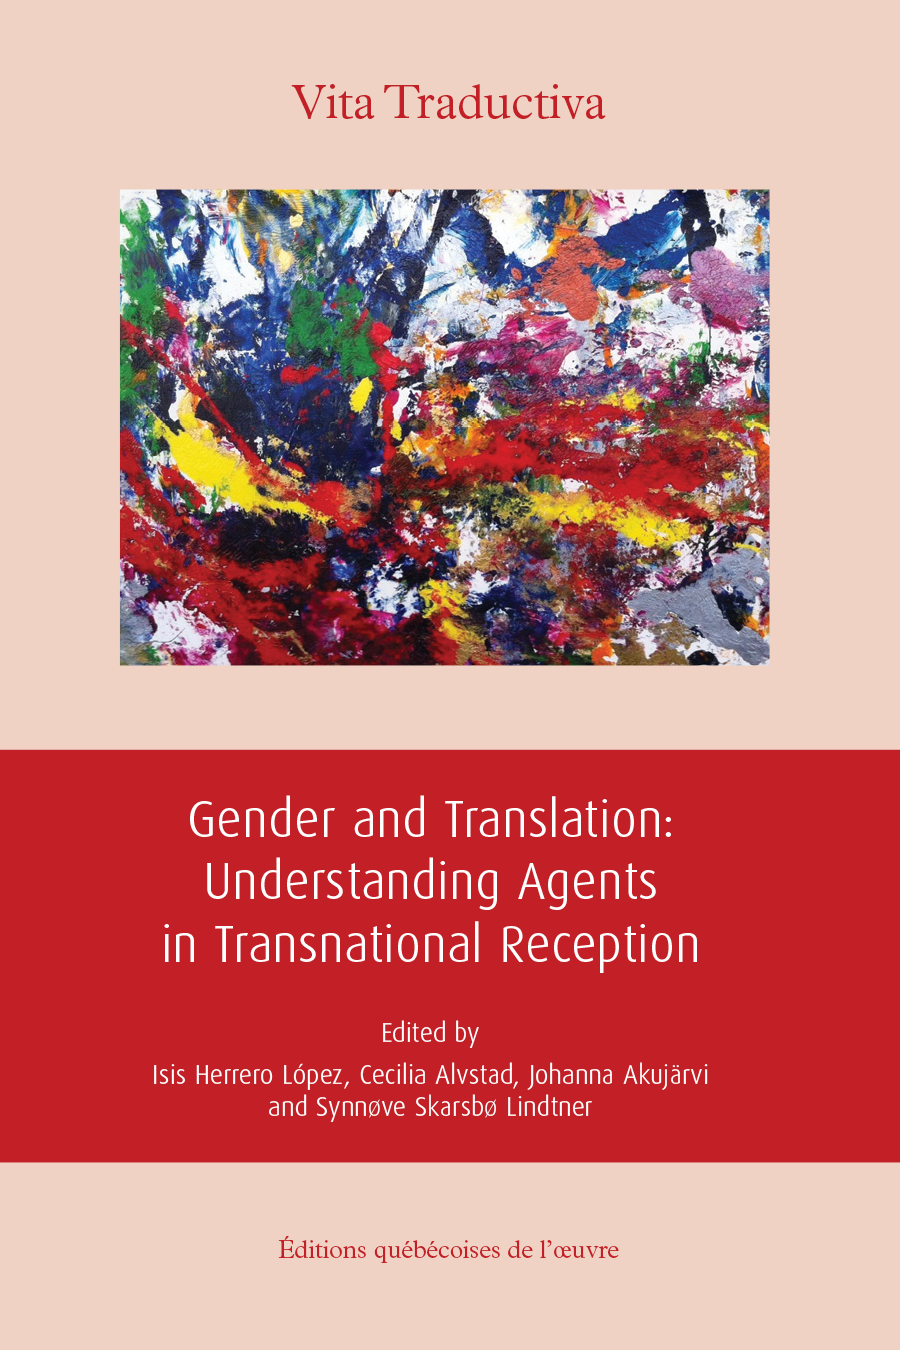 Gender and Translation: Understanding Agents in Transnational Reception